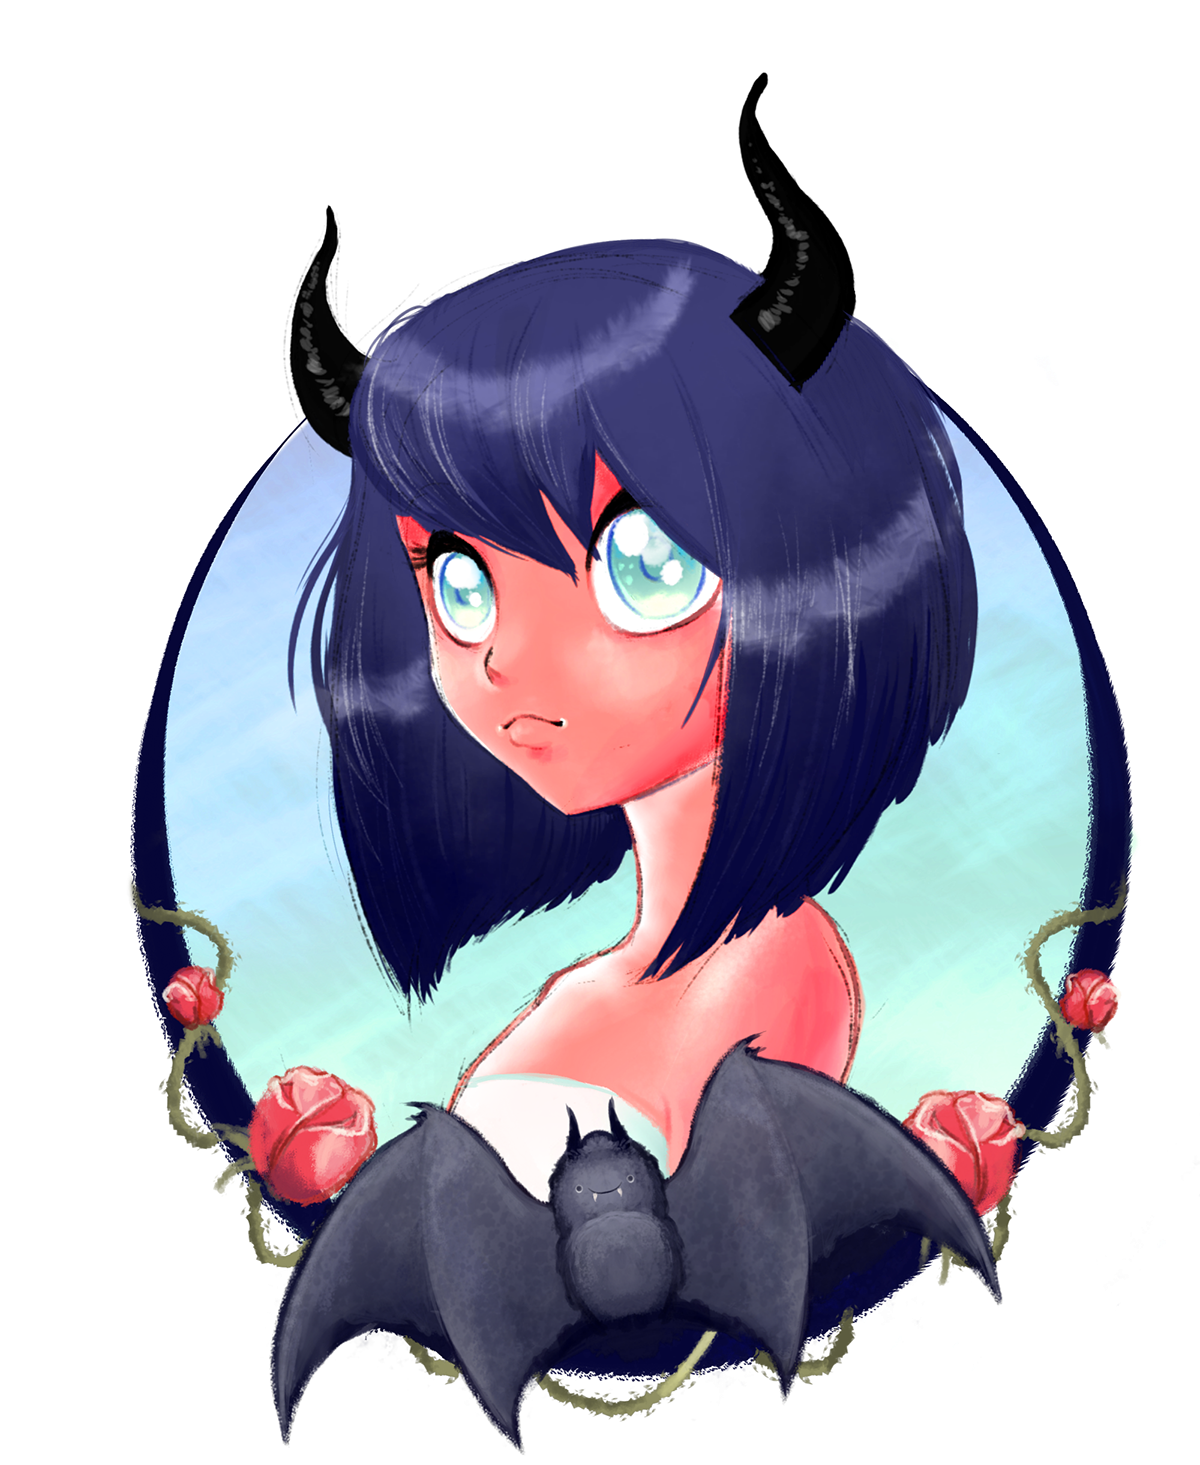 Anime devil png. Demon girl on behance